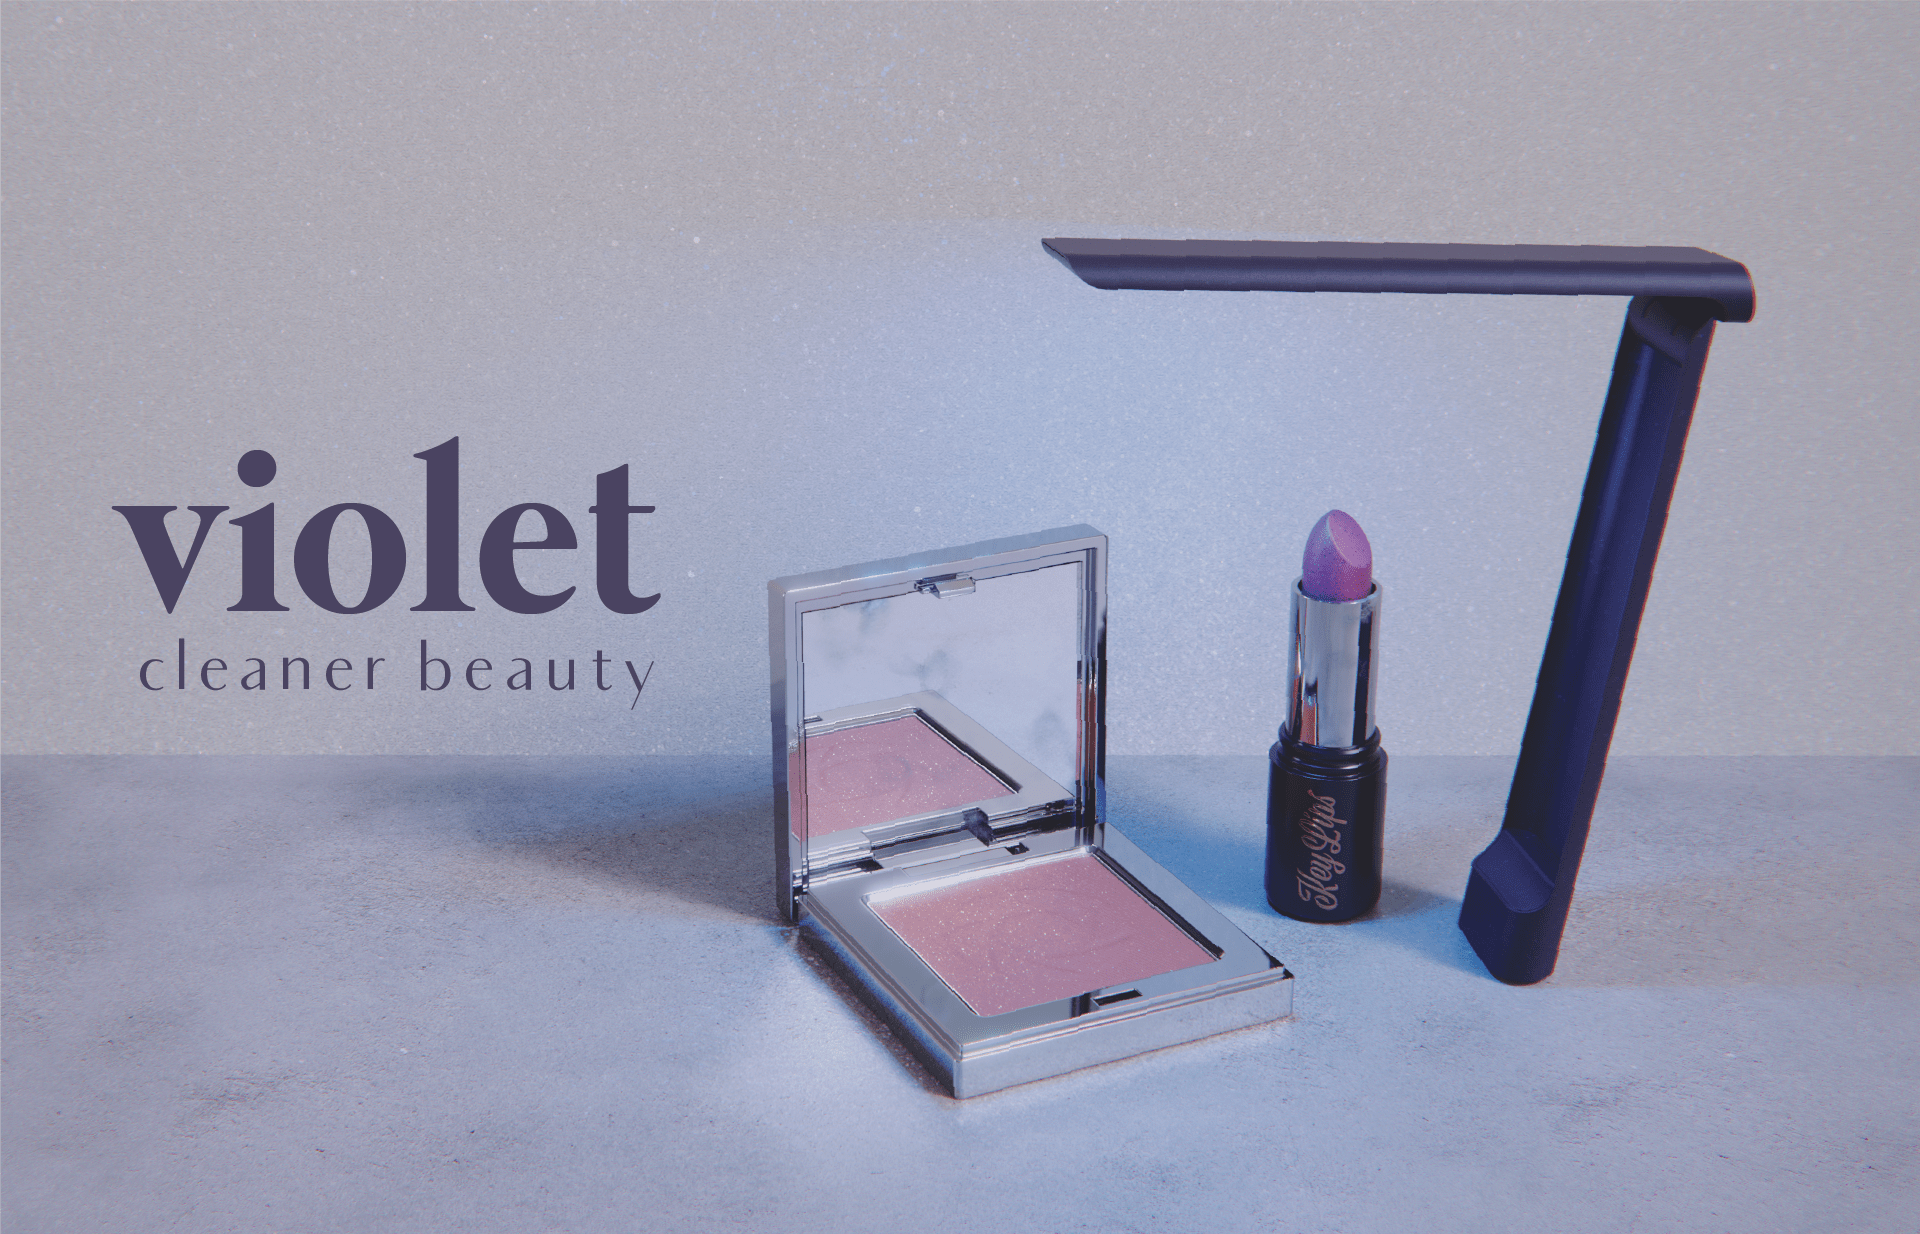 Violet: Cleaner Beauty